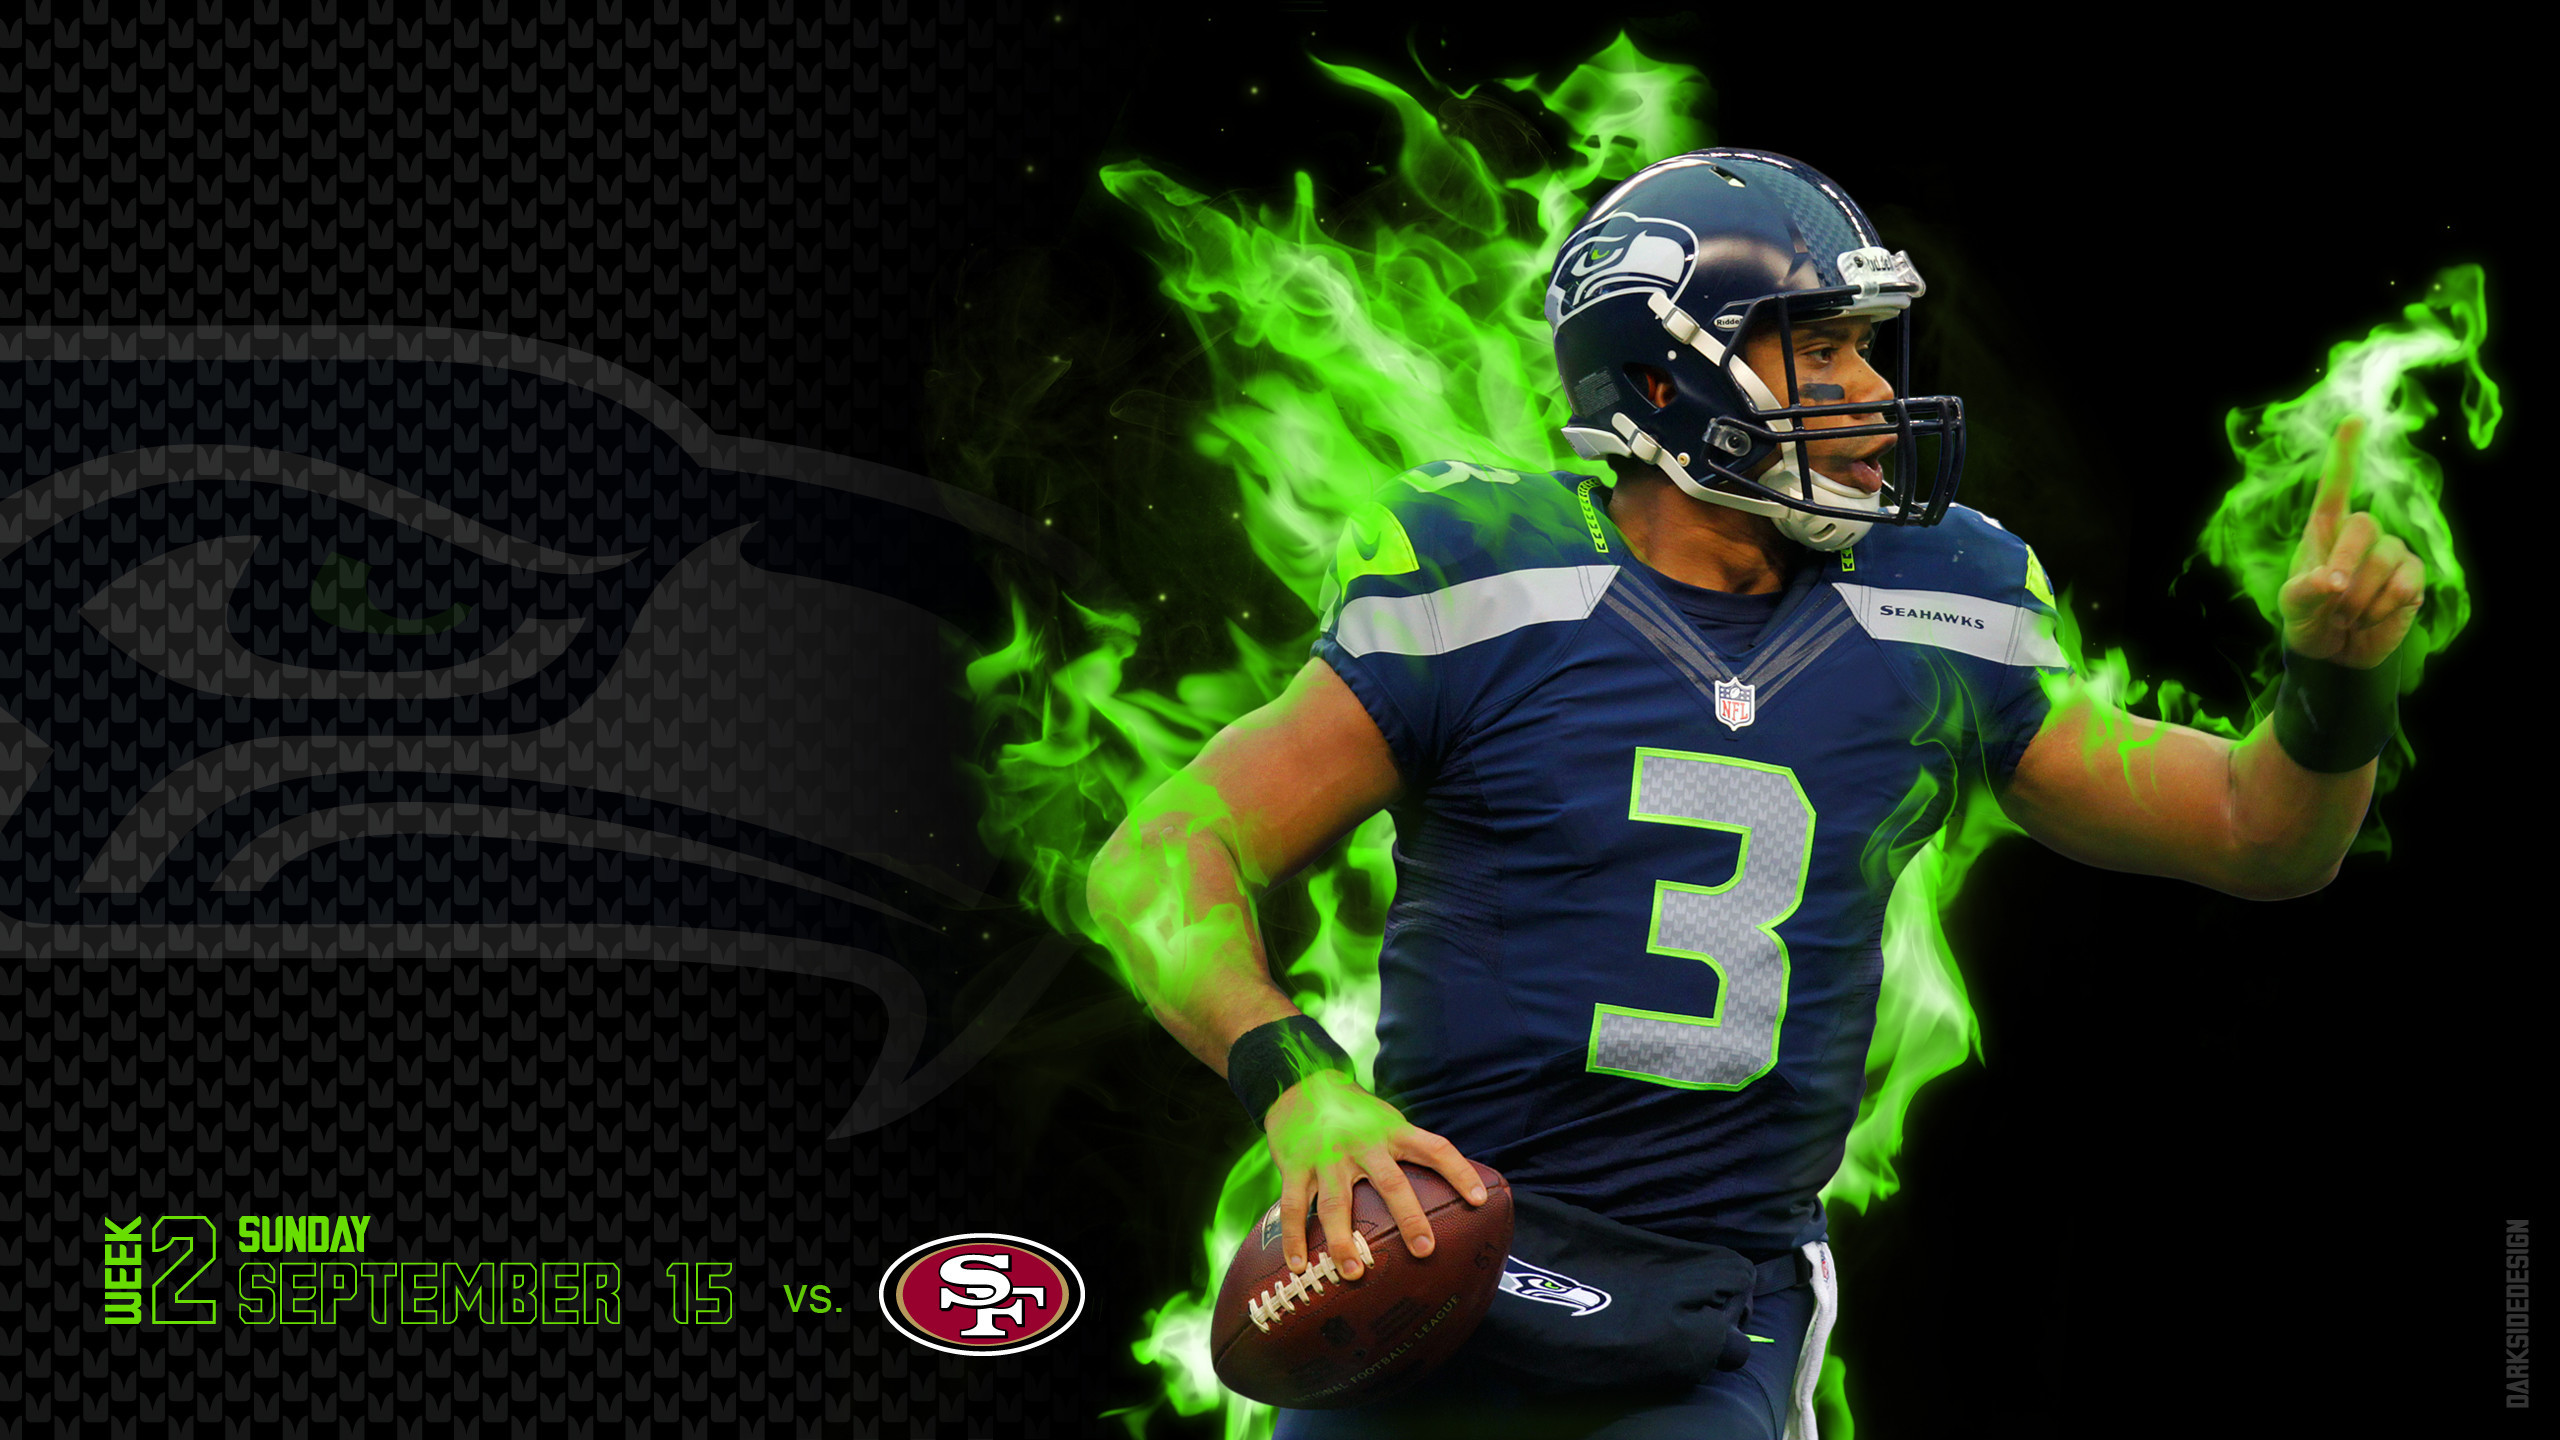 cool football backgrounds 52